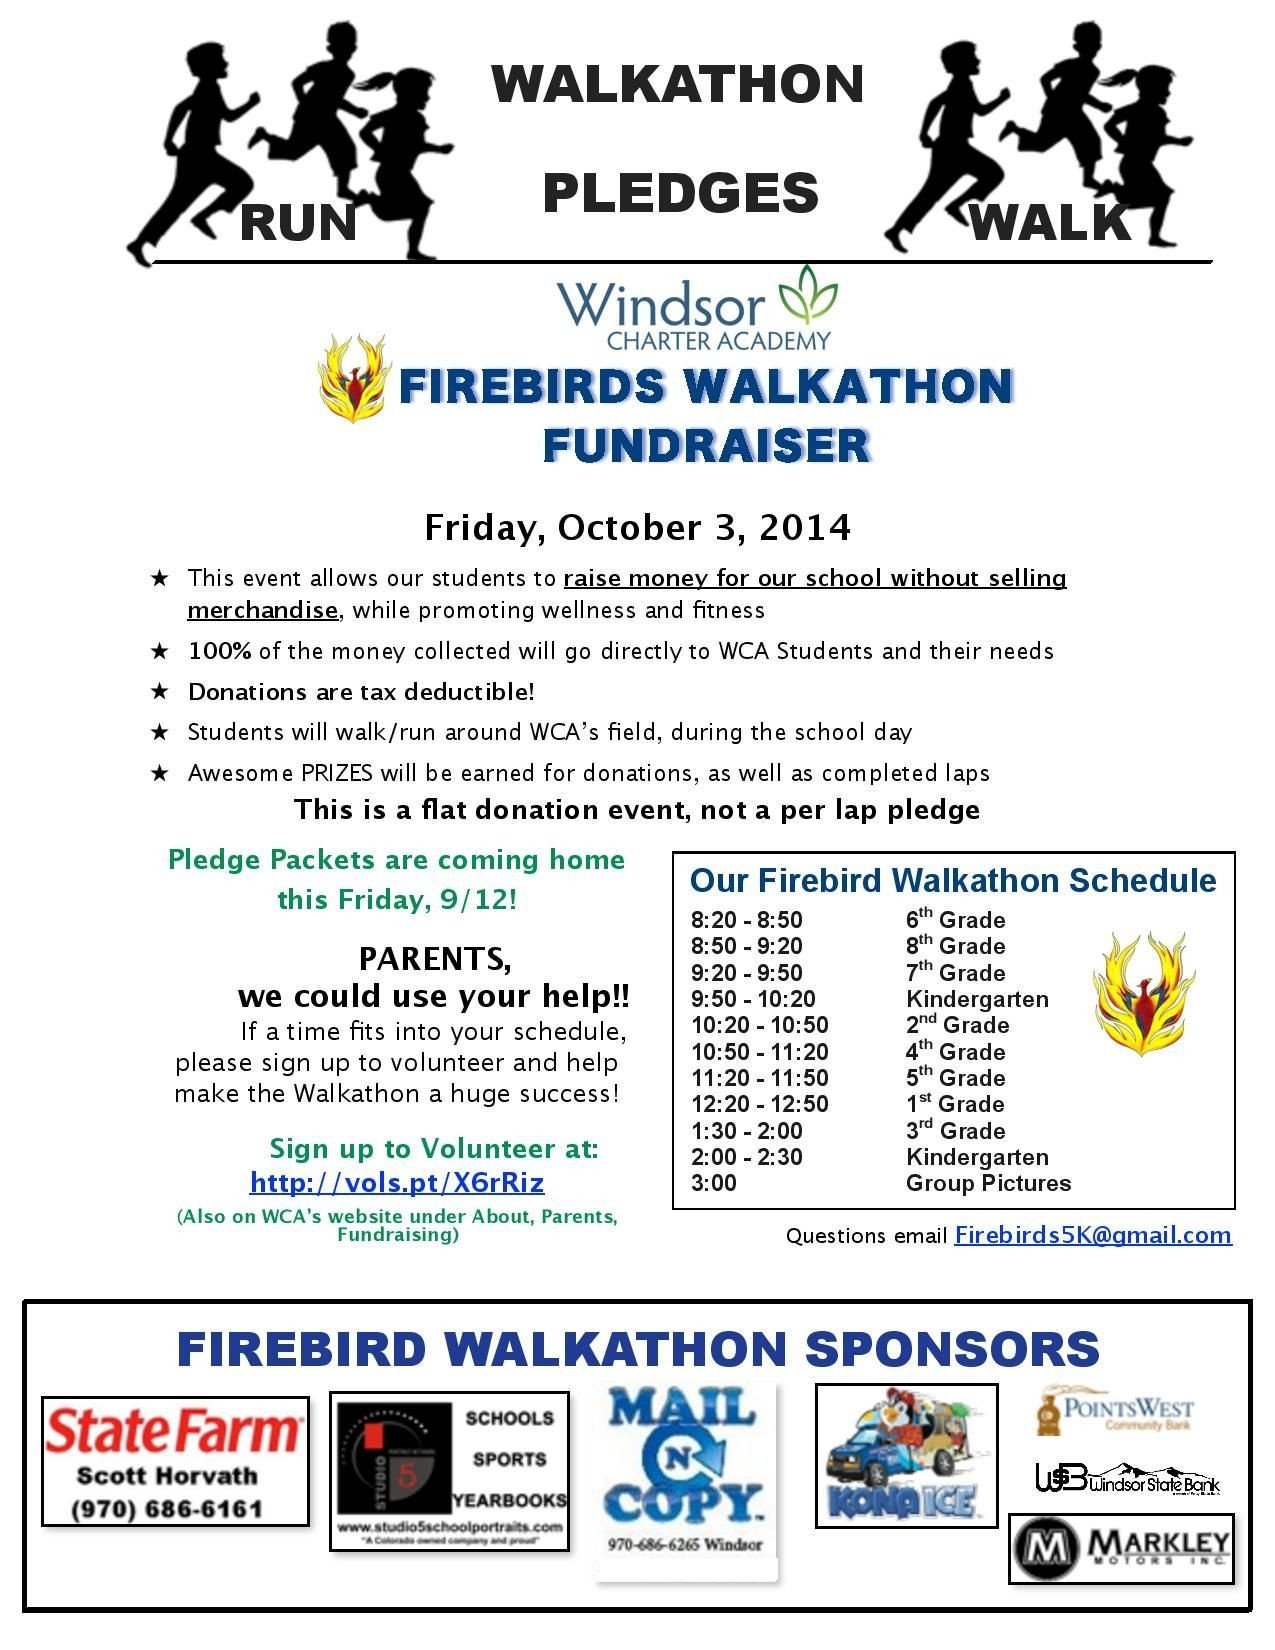 Walkathon Registration form Template 2014 Firebirds Walkathon Flyer for 9 12 14 Page 001